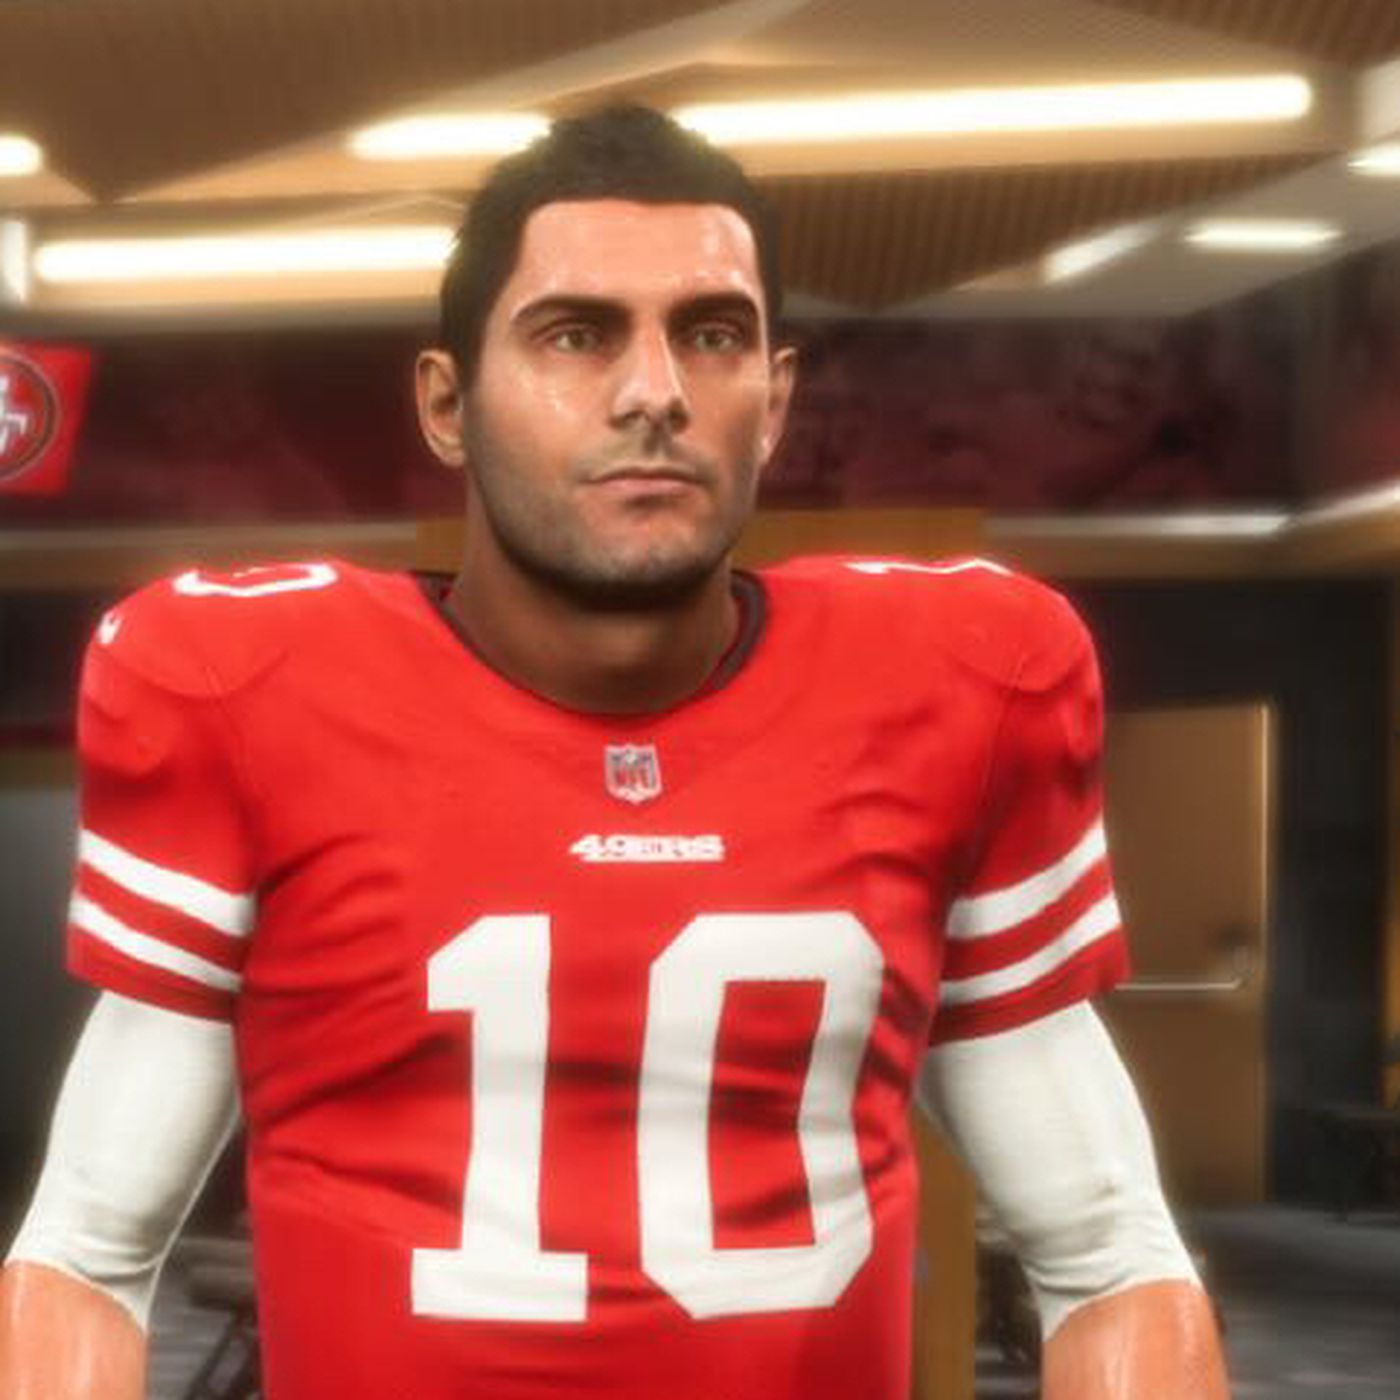 The Madden 19 design of Jimmy Garoppolo is something